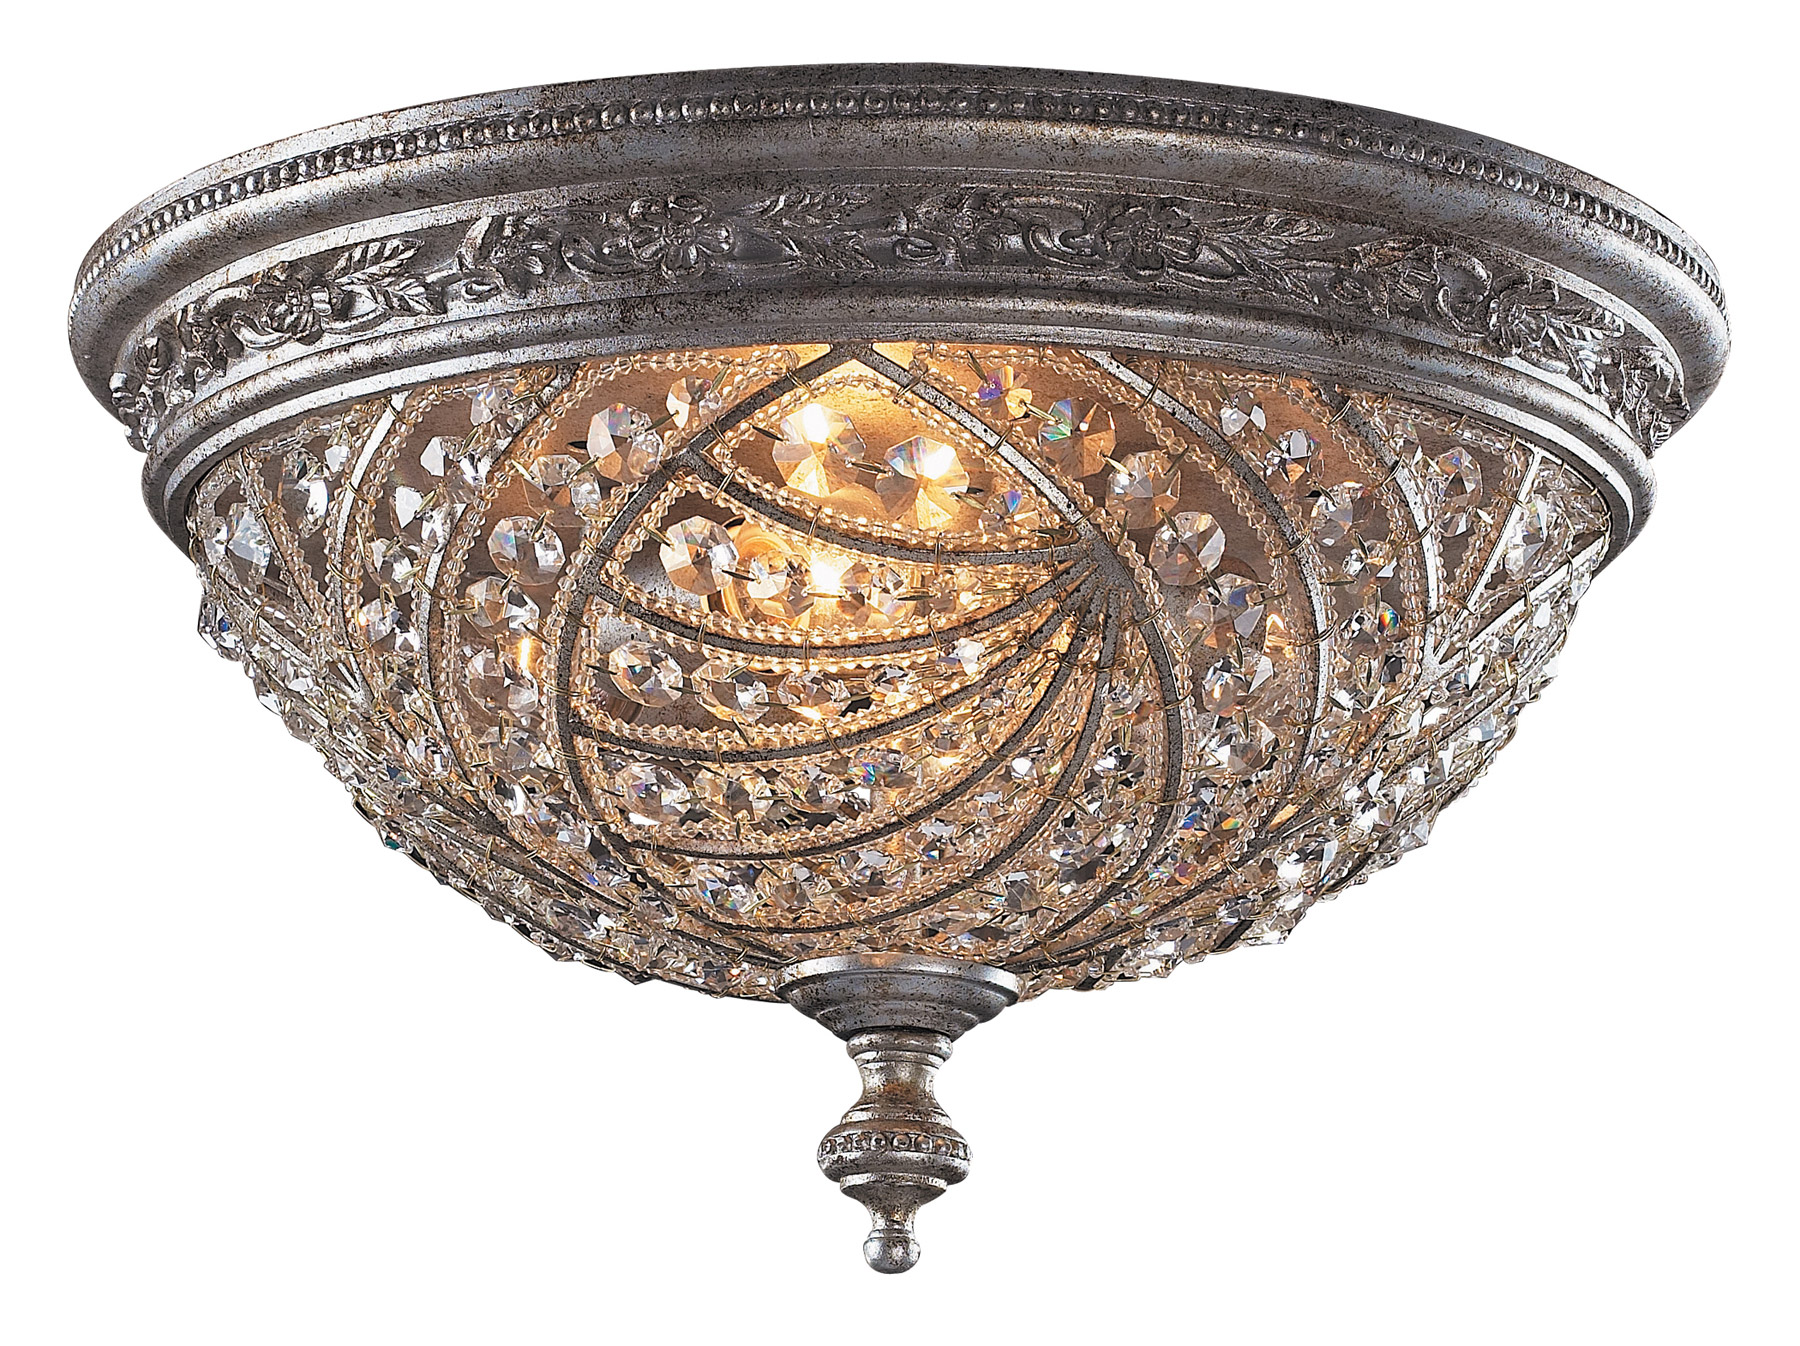 Elk lighting 62324 crystal renaissance flush mount ceiling fixture aloadofball Choice Image